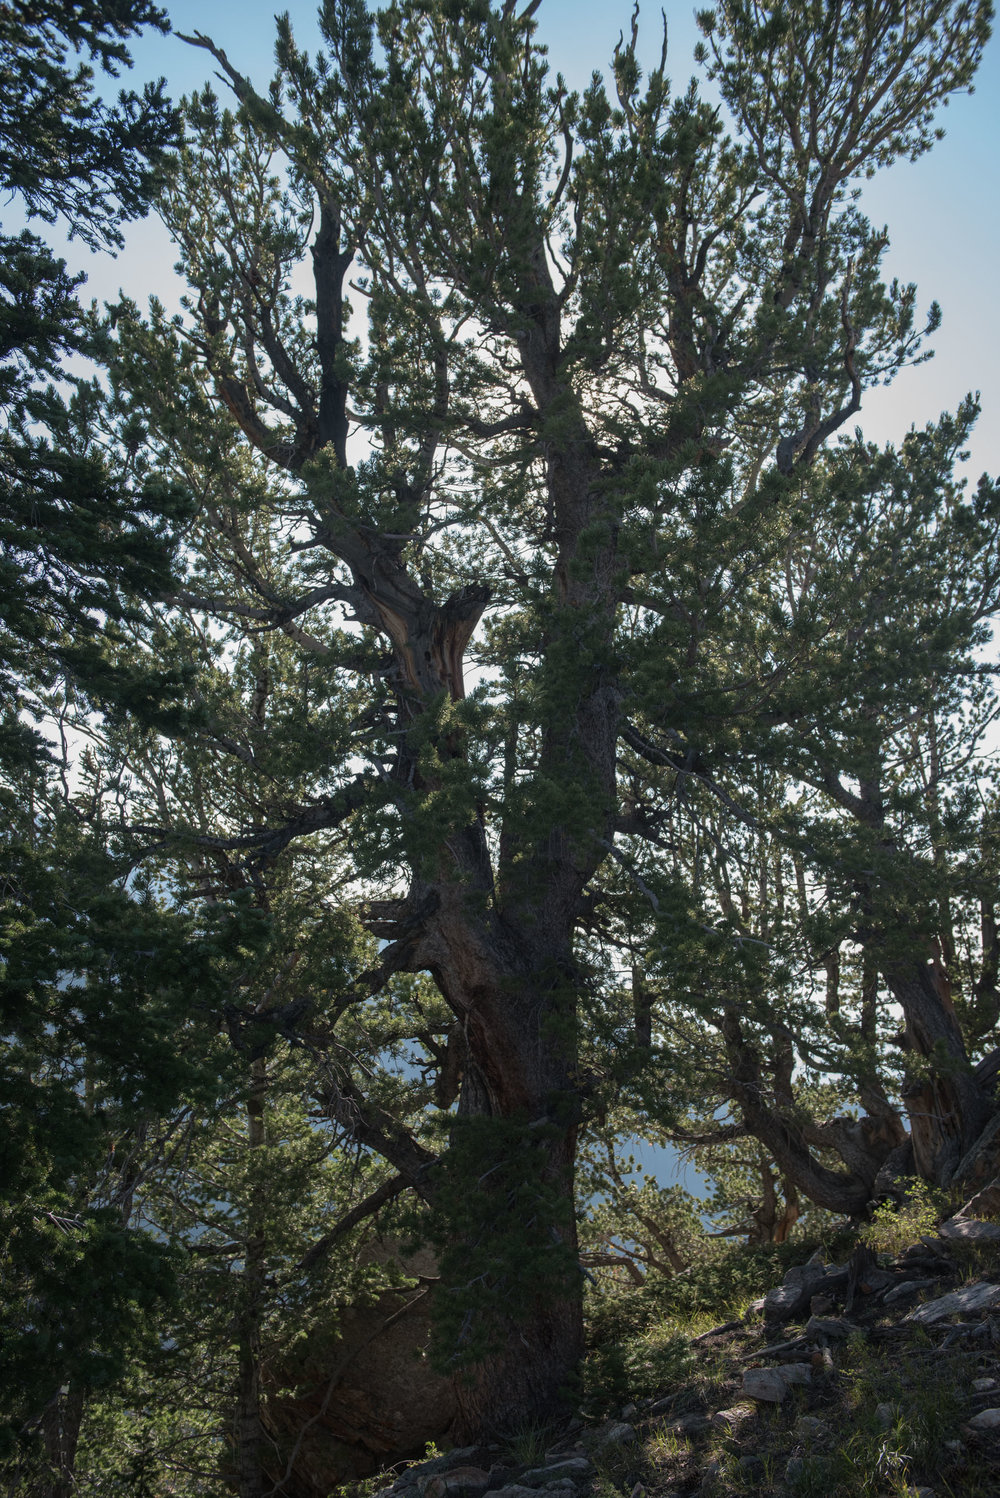 Bristlecone pine tree in the Wasatch Range. Utah.